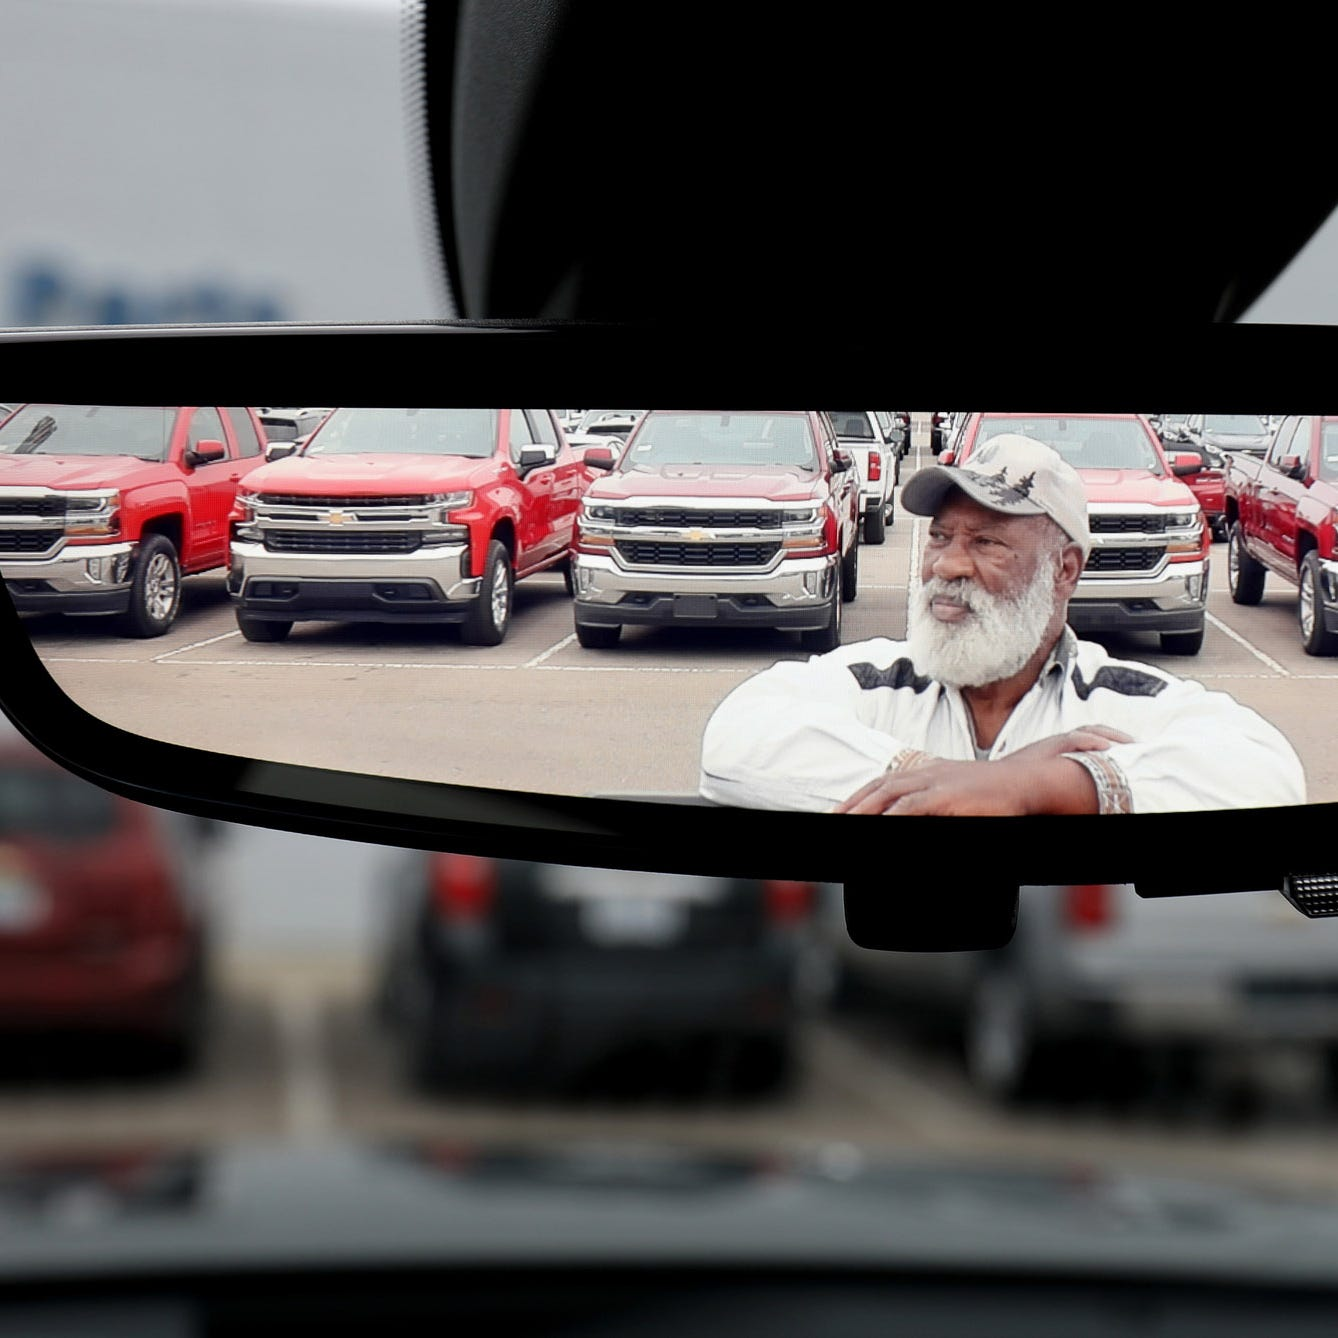 Pickups are pricing out the average new vehicle buyer